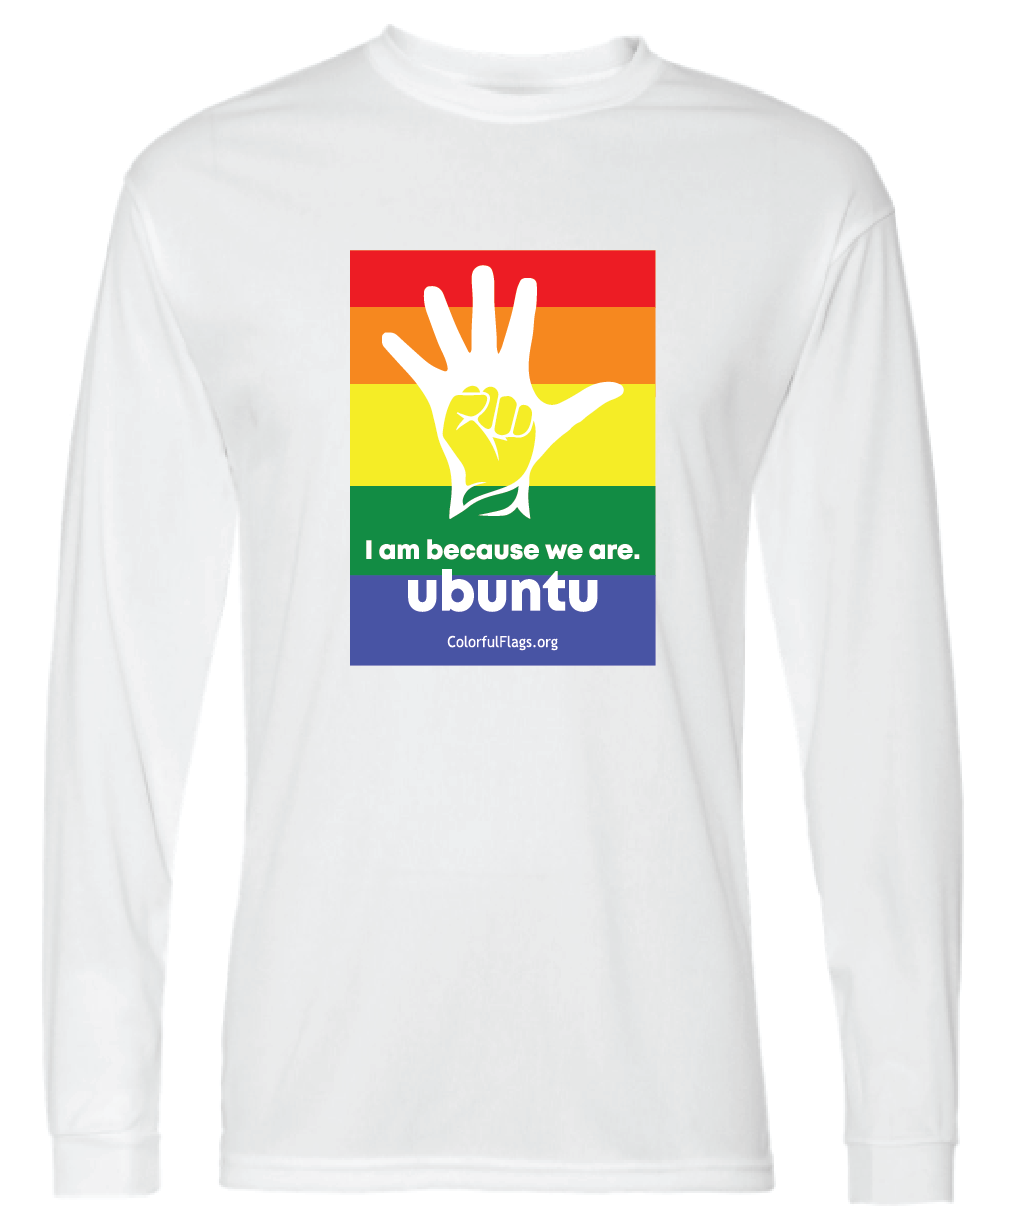 Basic Colorful Flags T-Shirt (Long Sleeve)